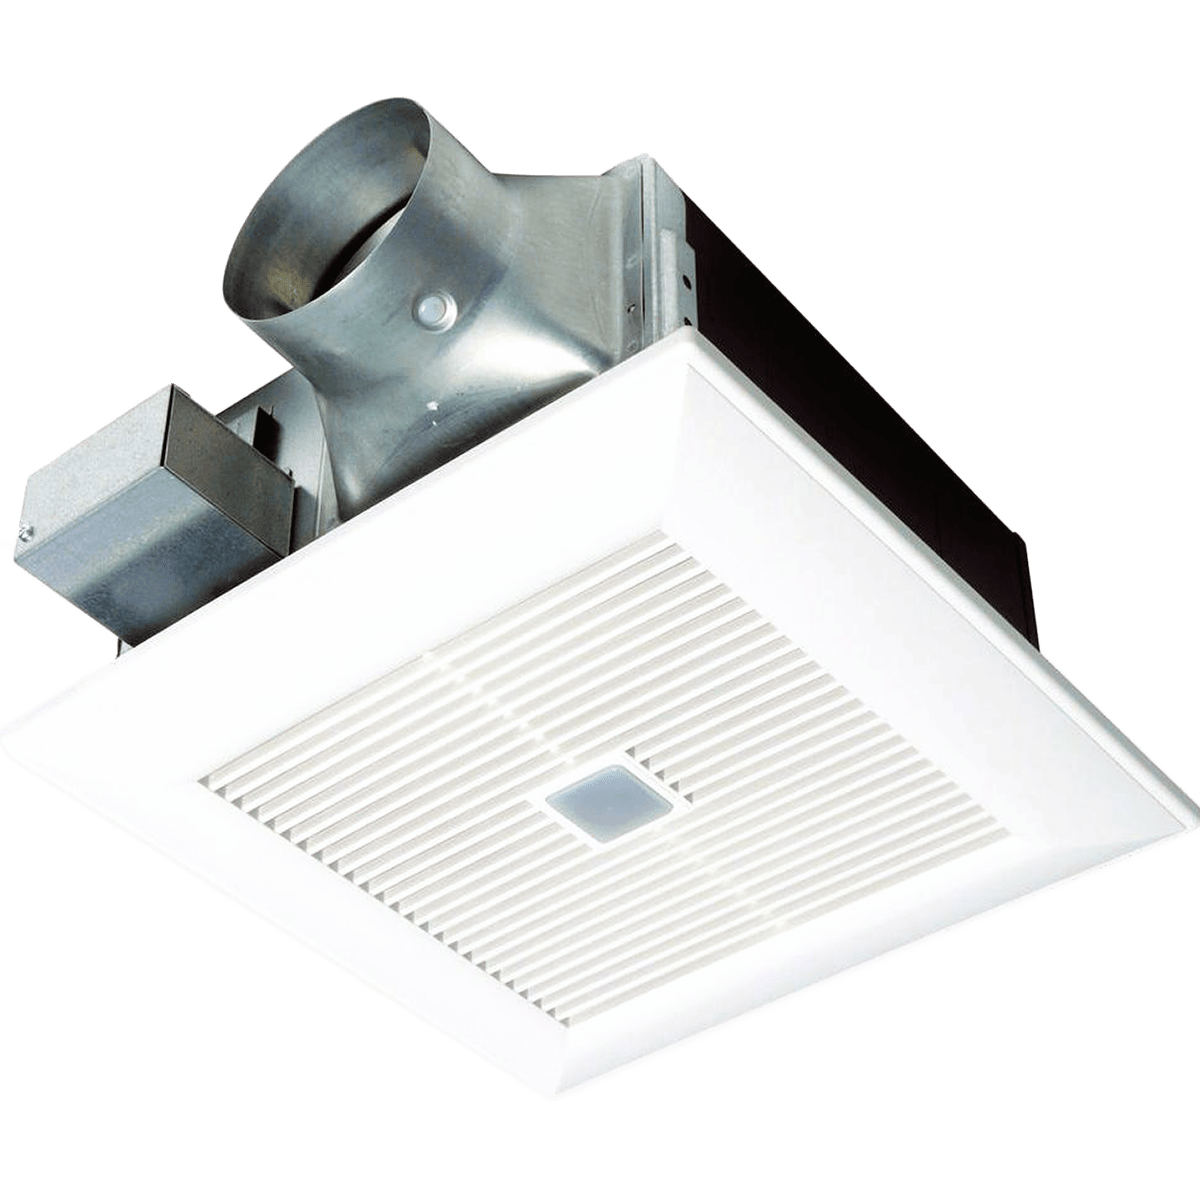 Panasonic WhisperFit EZ Bathroom Fans Sylvane - Panasonic bathroom fan motion sensor